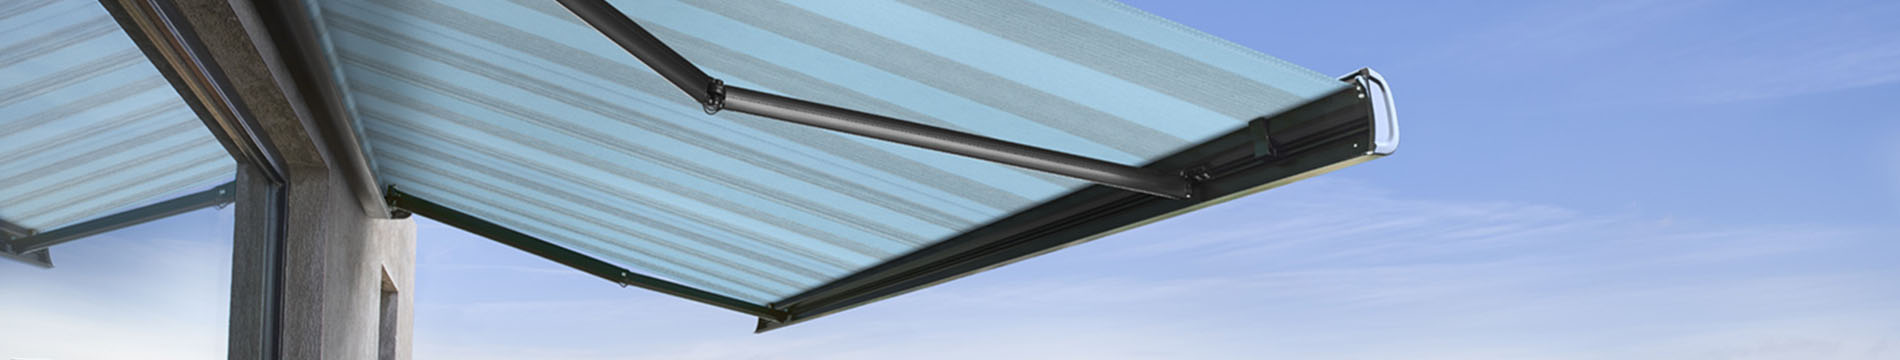 An Orchestra fabric for folding-arm awnings